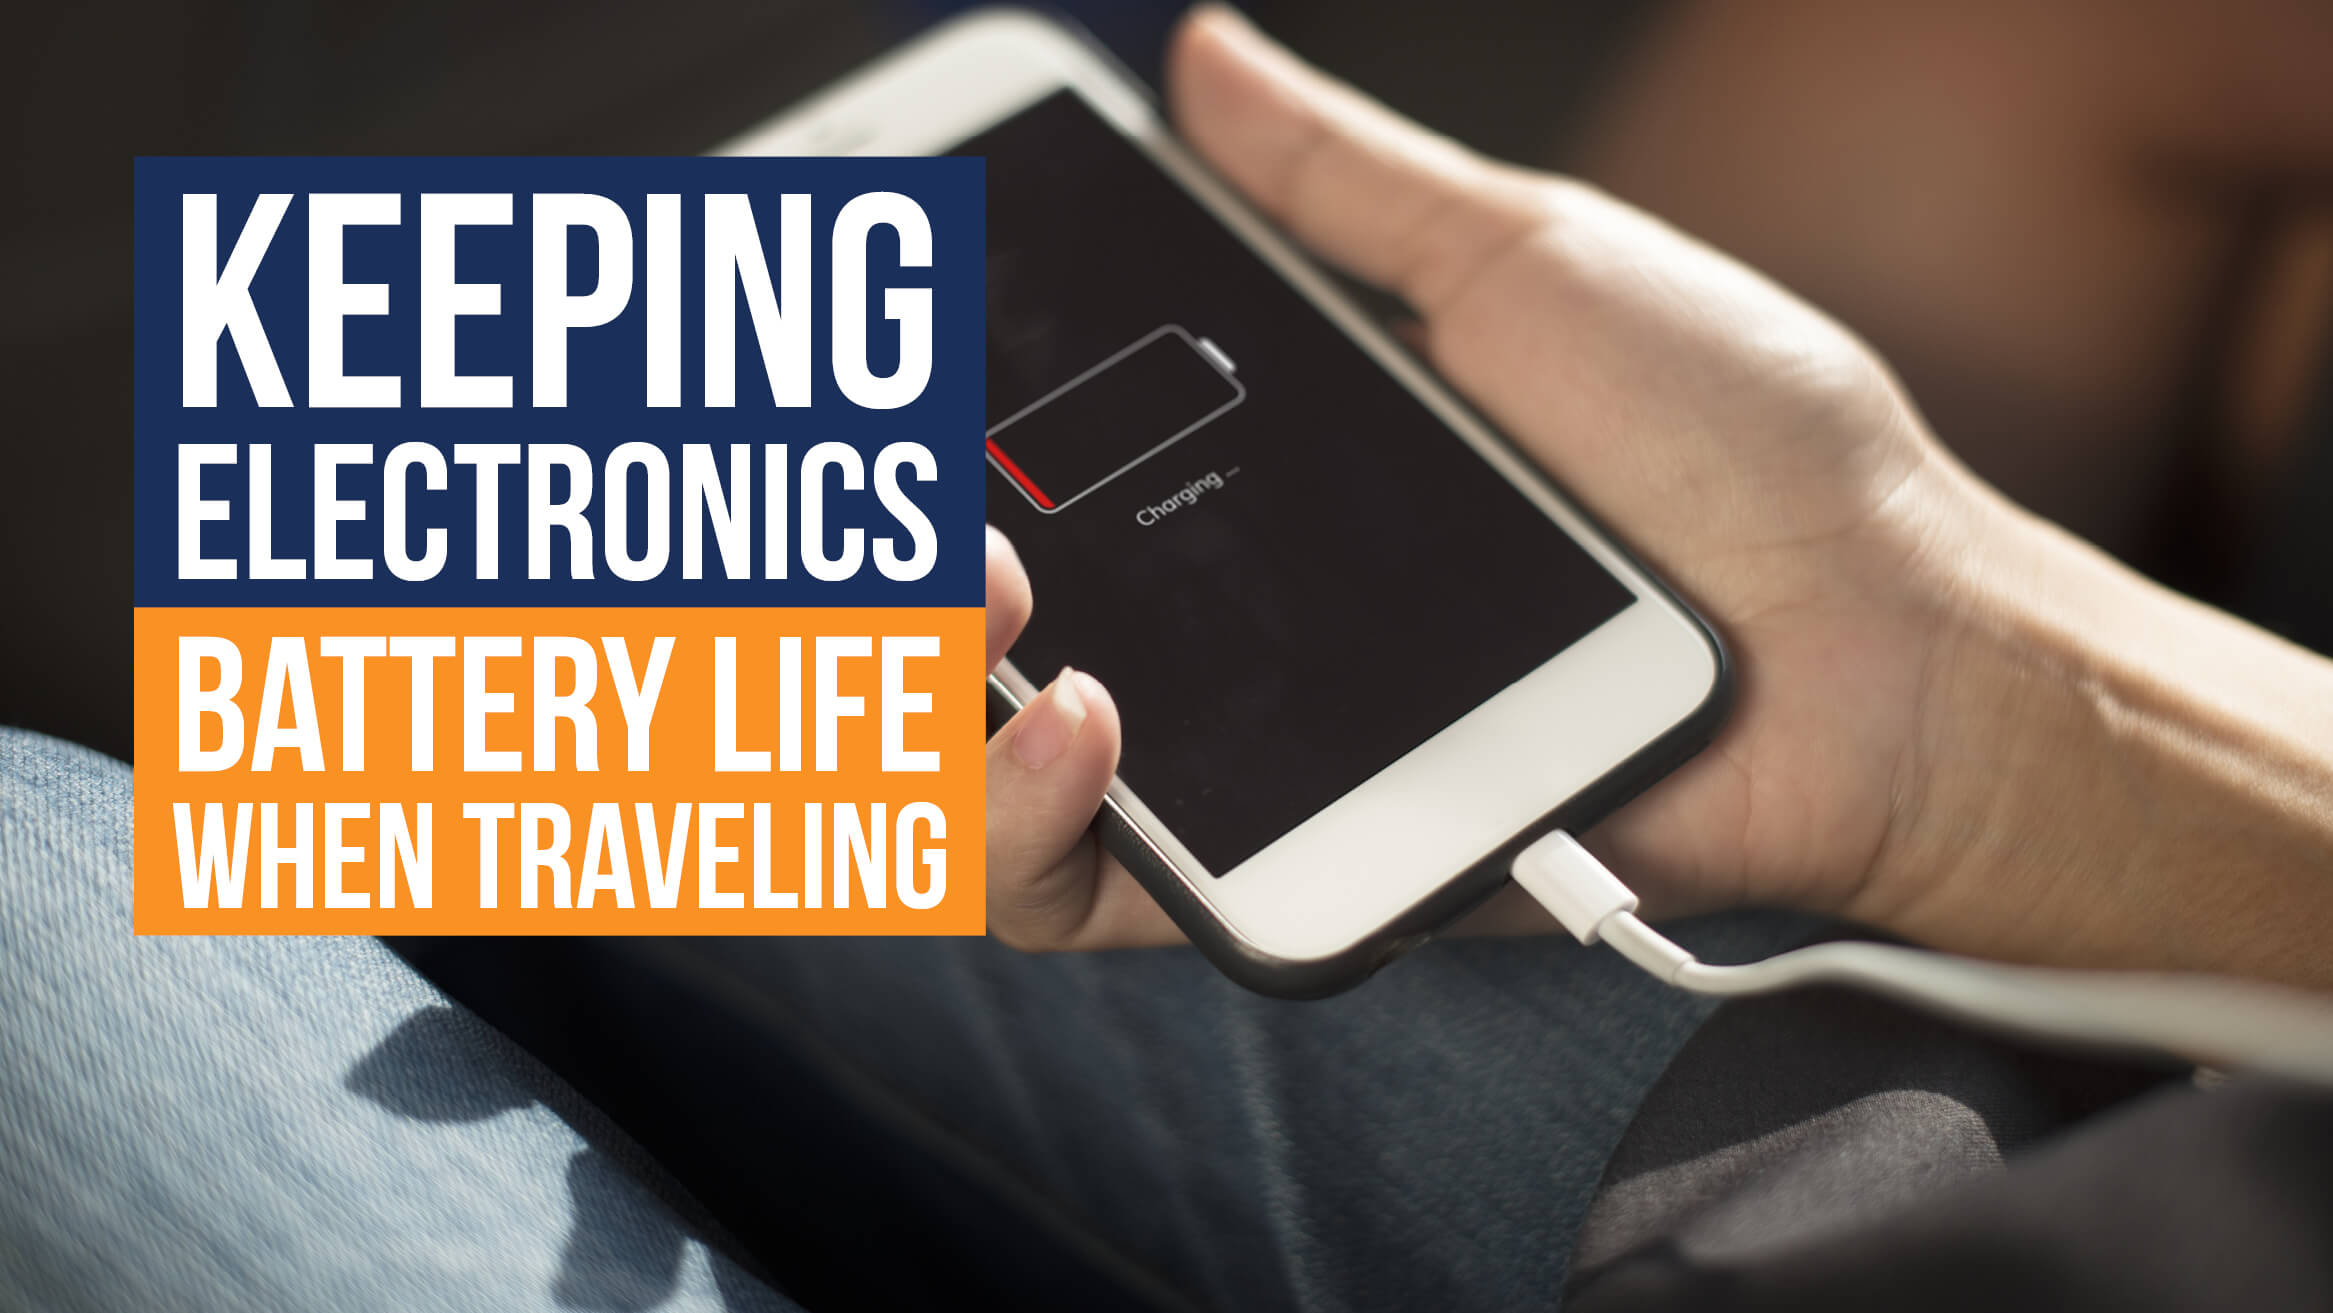 Keeping electronics battery life when traveling header